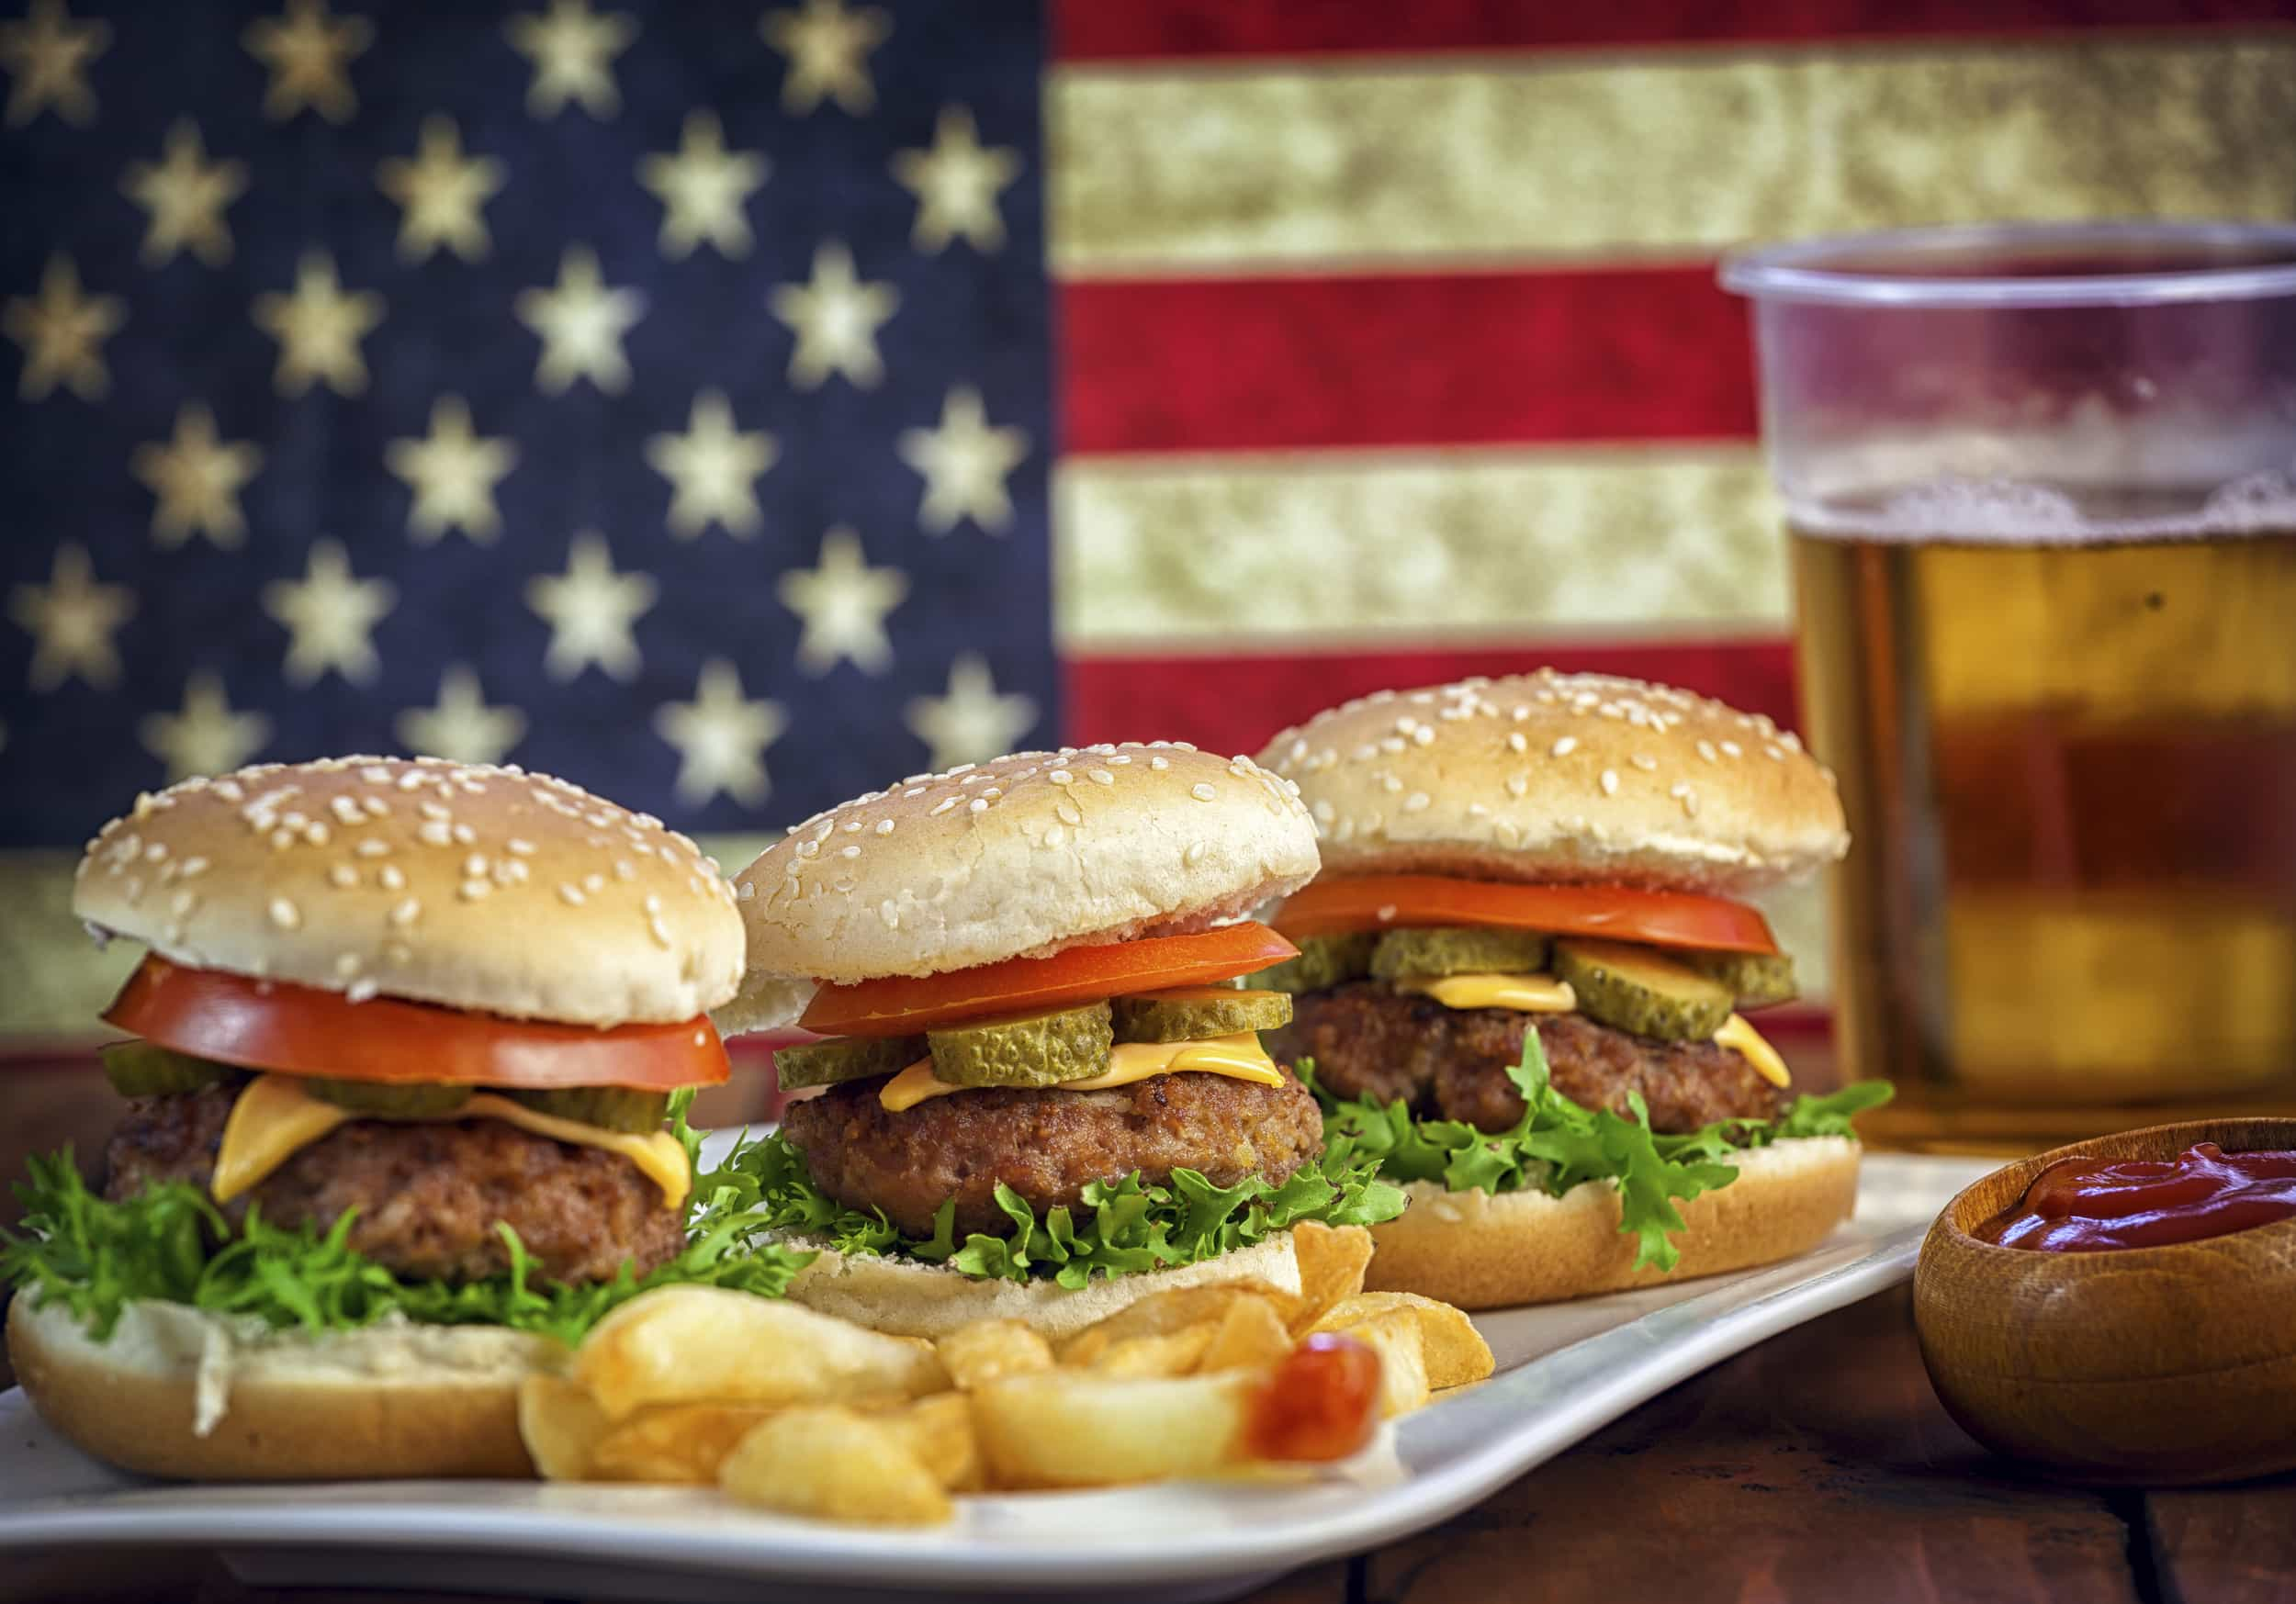 American Burger with pickles,cheese,tomato,red onion,lettuce and french fries at a Picnic for 4th of July in front of American flag